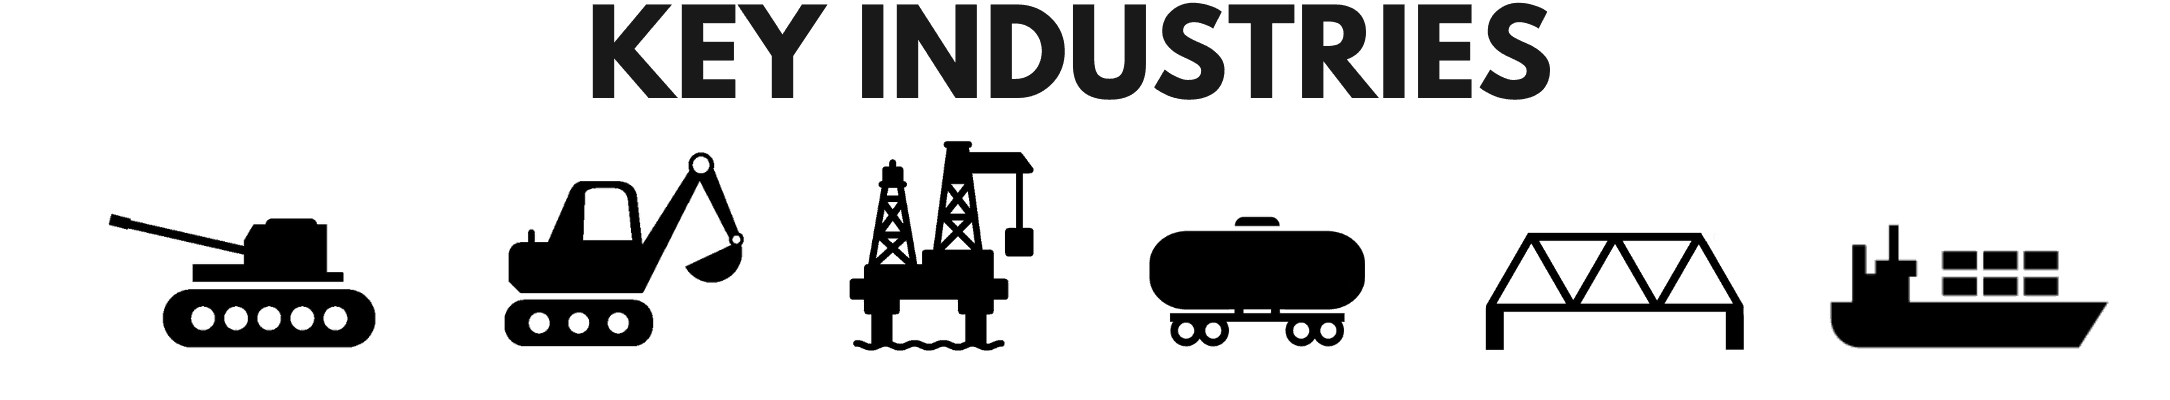 Icons of some of the heavy industries that IRCO Automation provides welding positioning equipment and welding automation to.